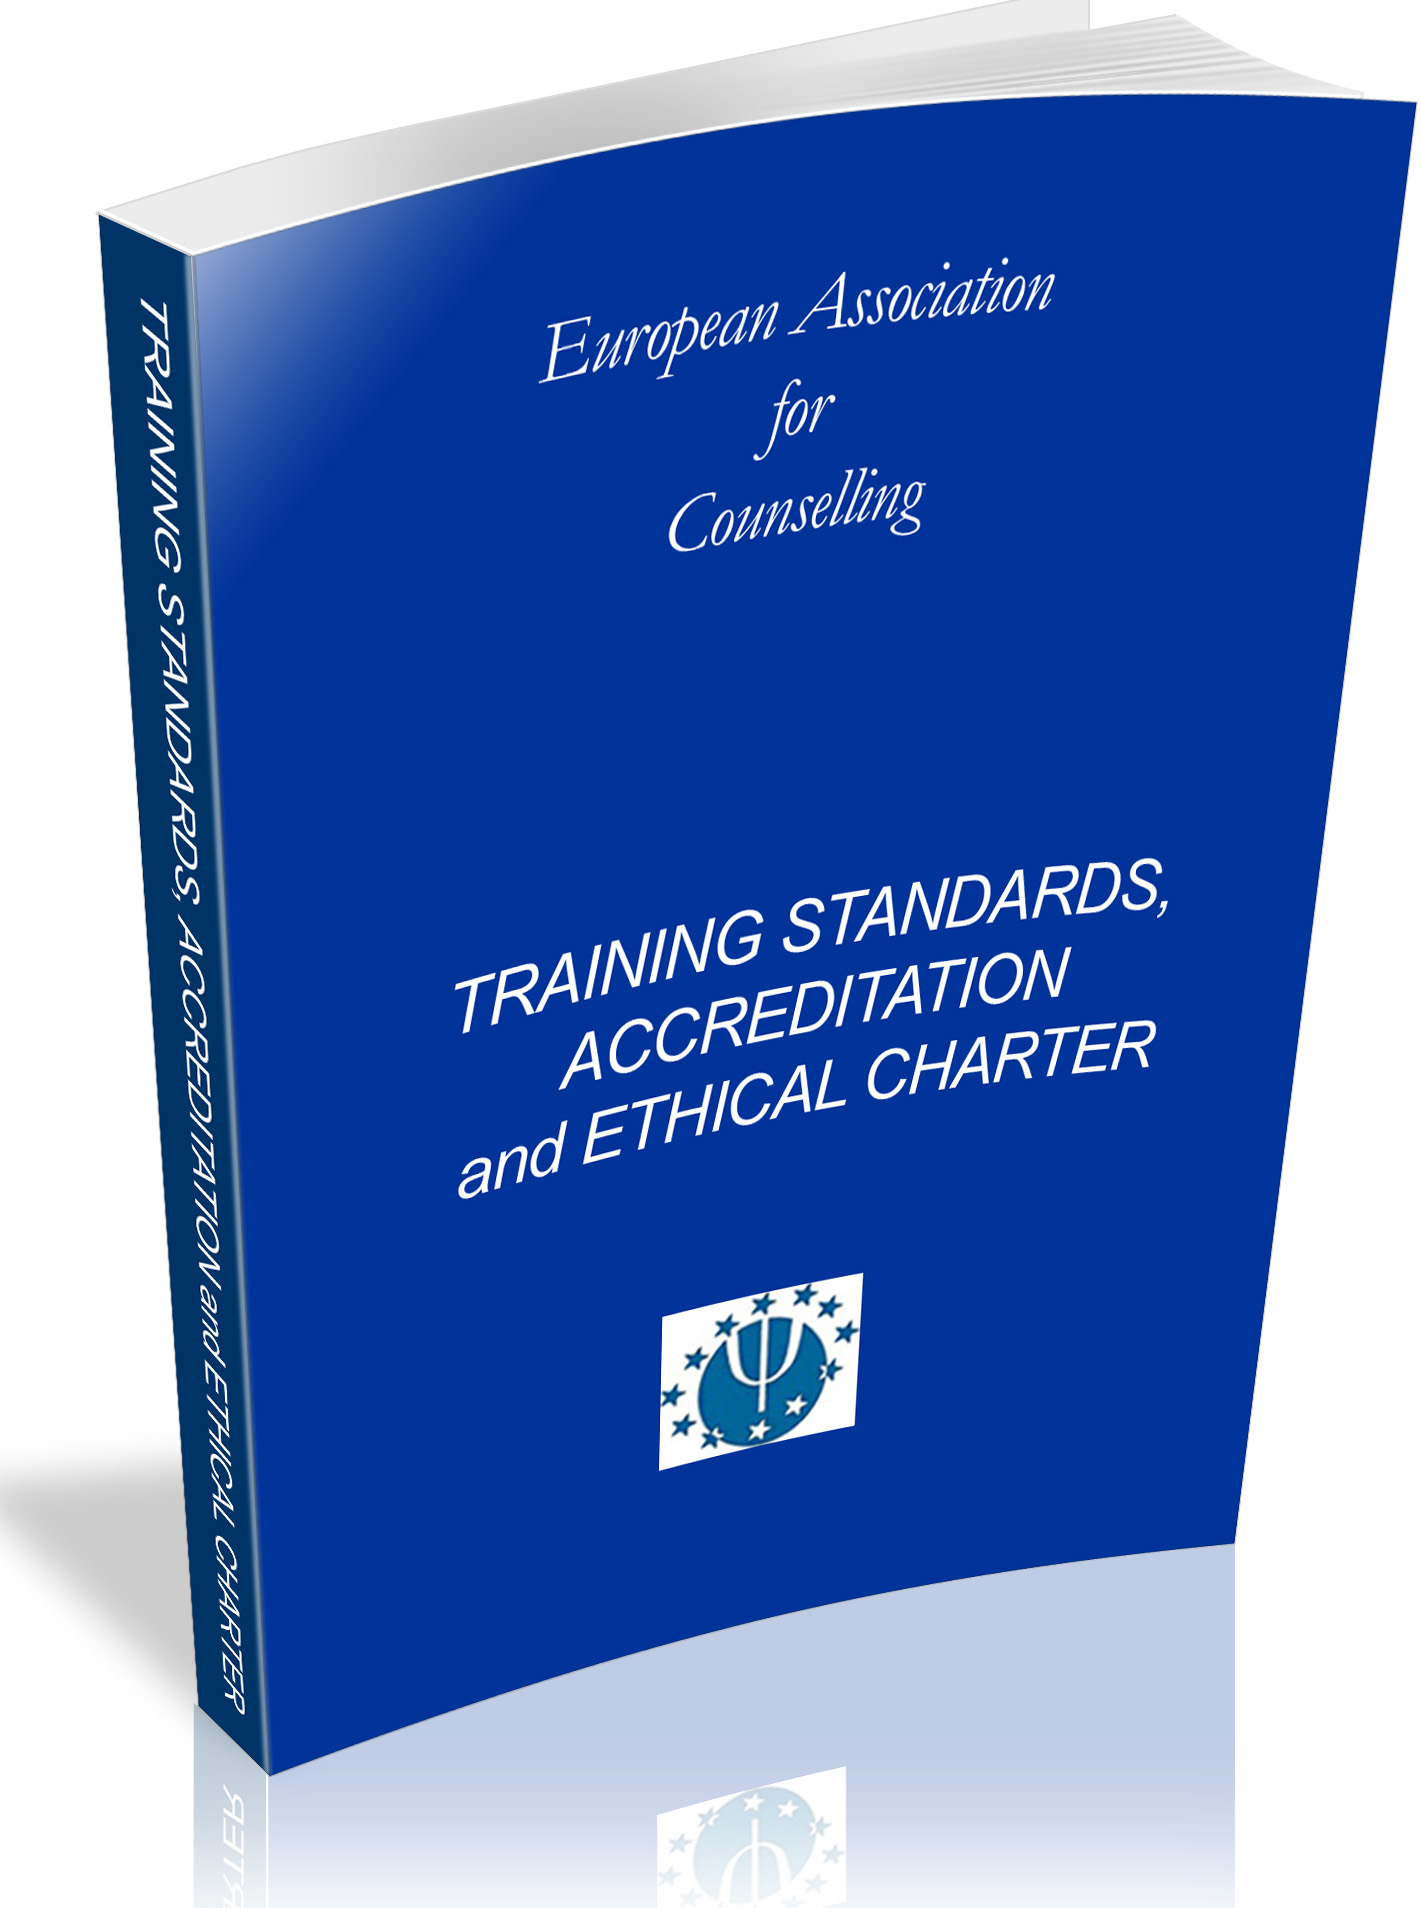 counselling and psychotherapy ethics This ethical framework for good practice in counselling and psychotherapy is published by the british association for counselling and psychotherapy, bacp house, 15 st john's business park, lutterworth, leicestershire, le17 4hb.